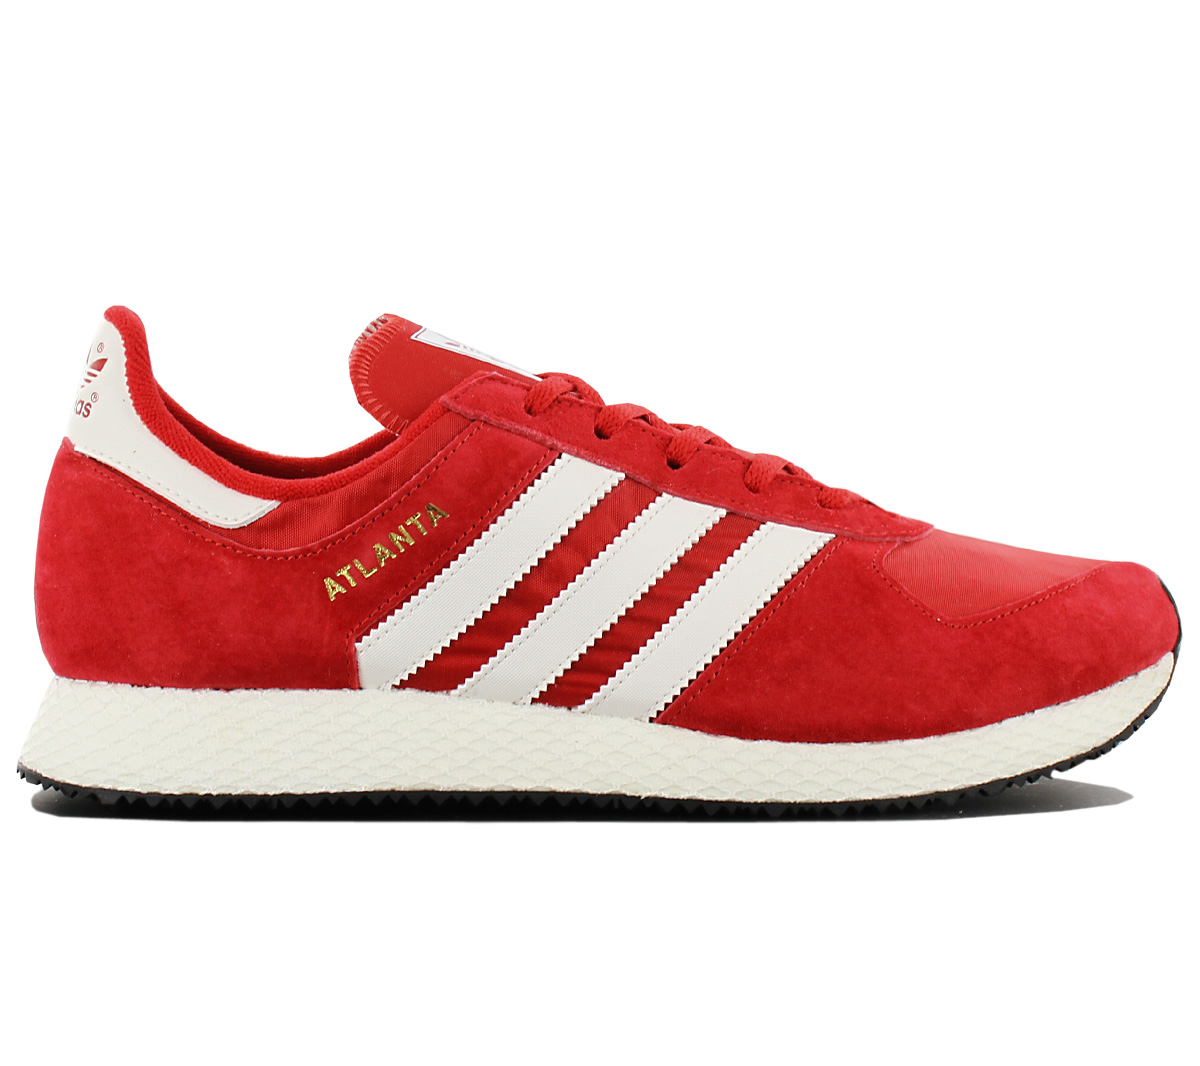 Details about Adidas Originals Atlanta Special Men's Sneaker Red Shoe Sneaker Retro BY1880